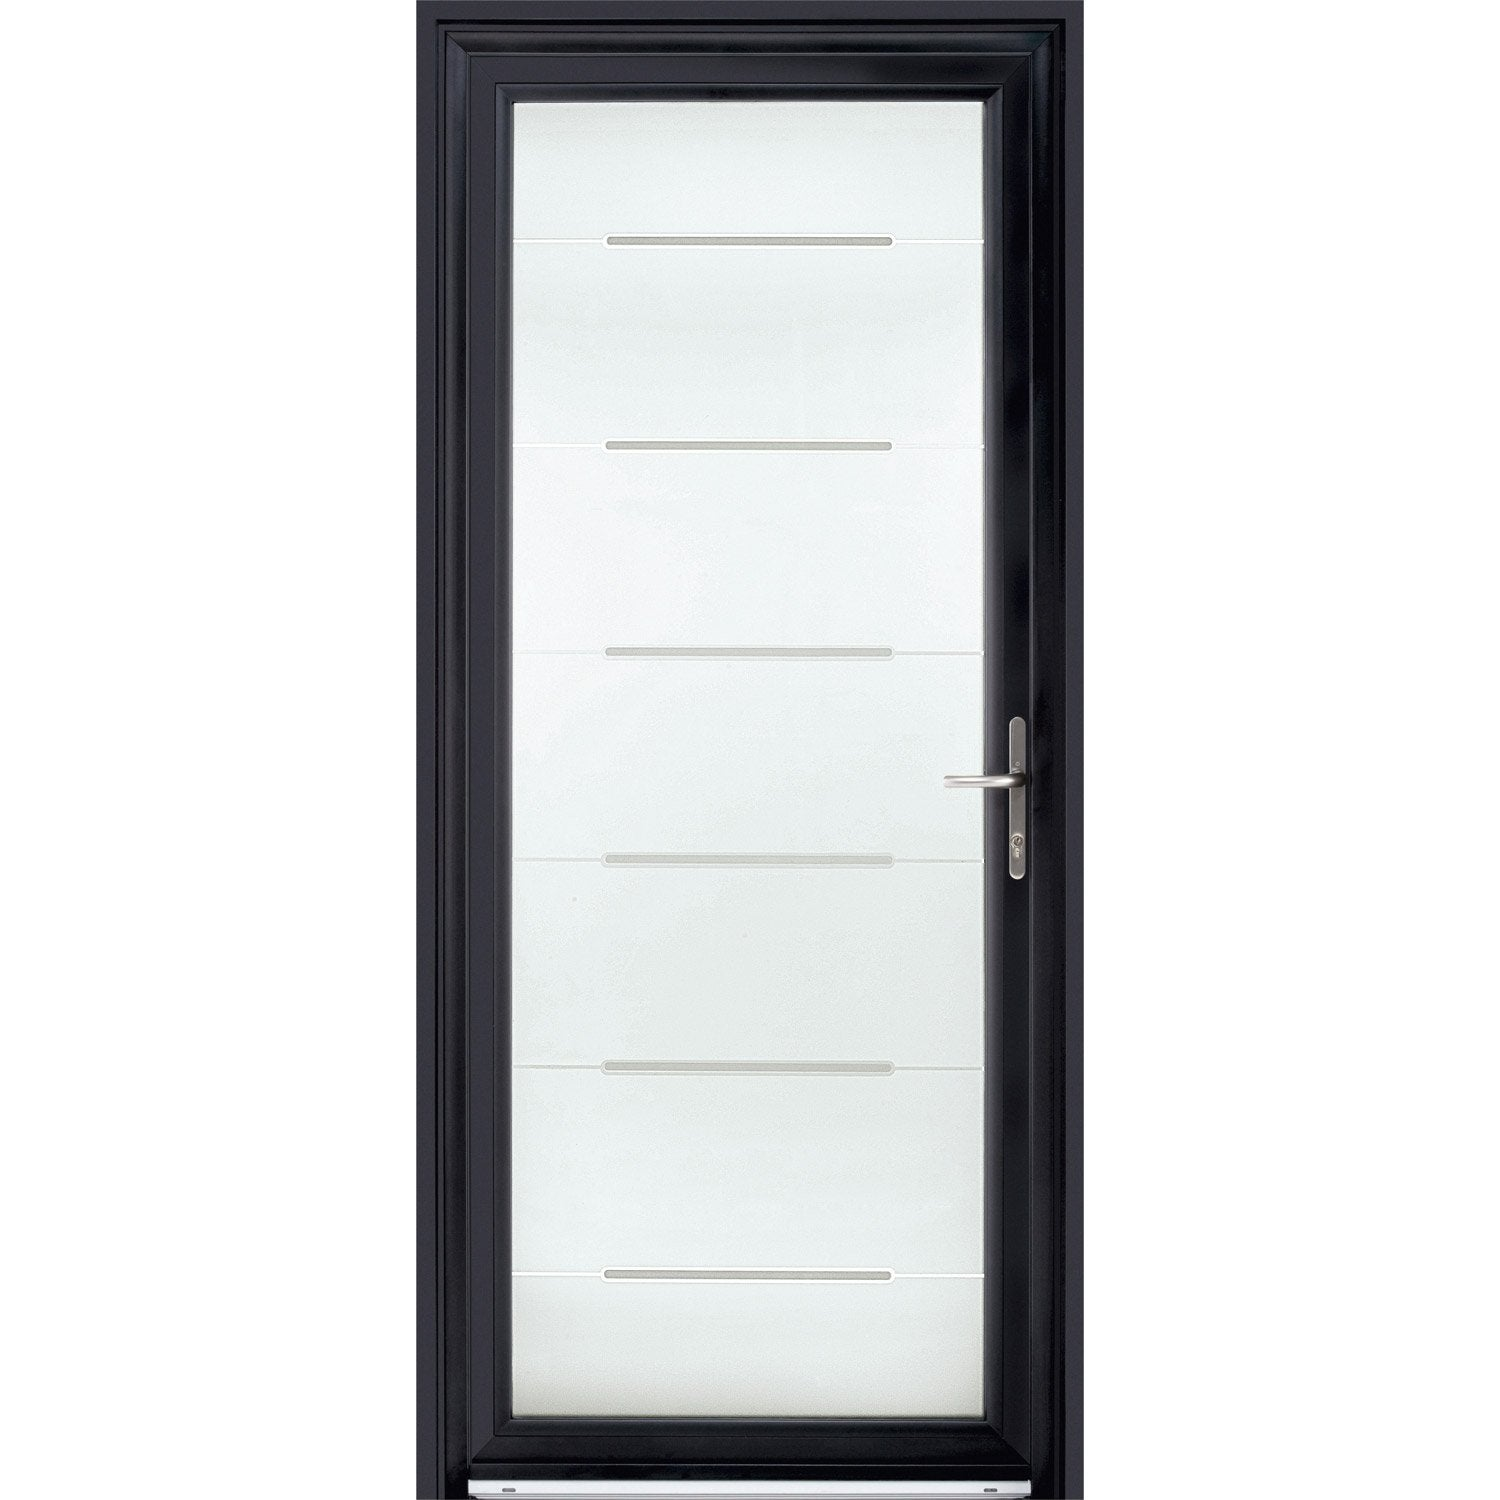 porte d 39 entr e sur mesure en aluminium stellium excellence leroy merlin. Black Bedroom Furniture Sets. Home Design Ideas